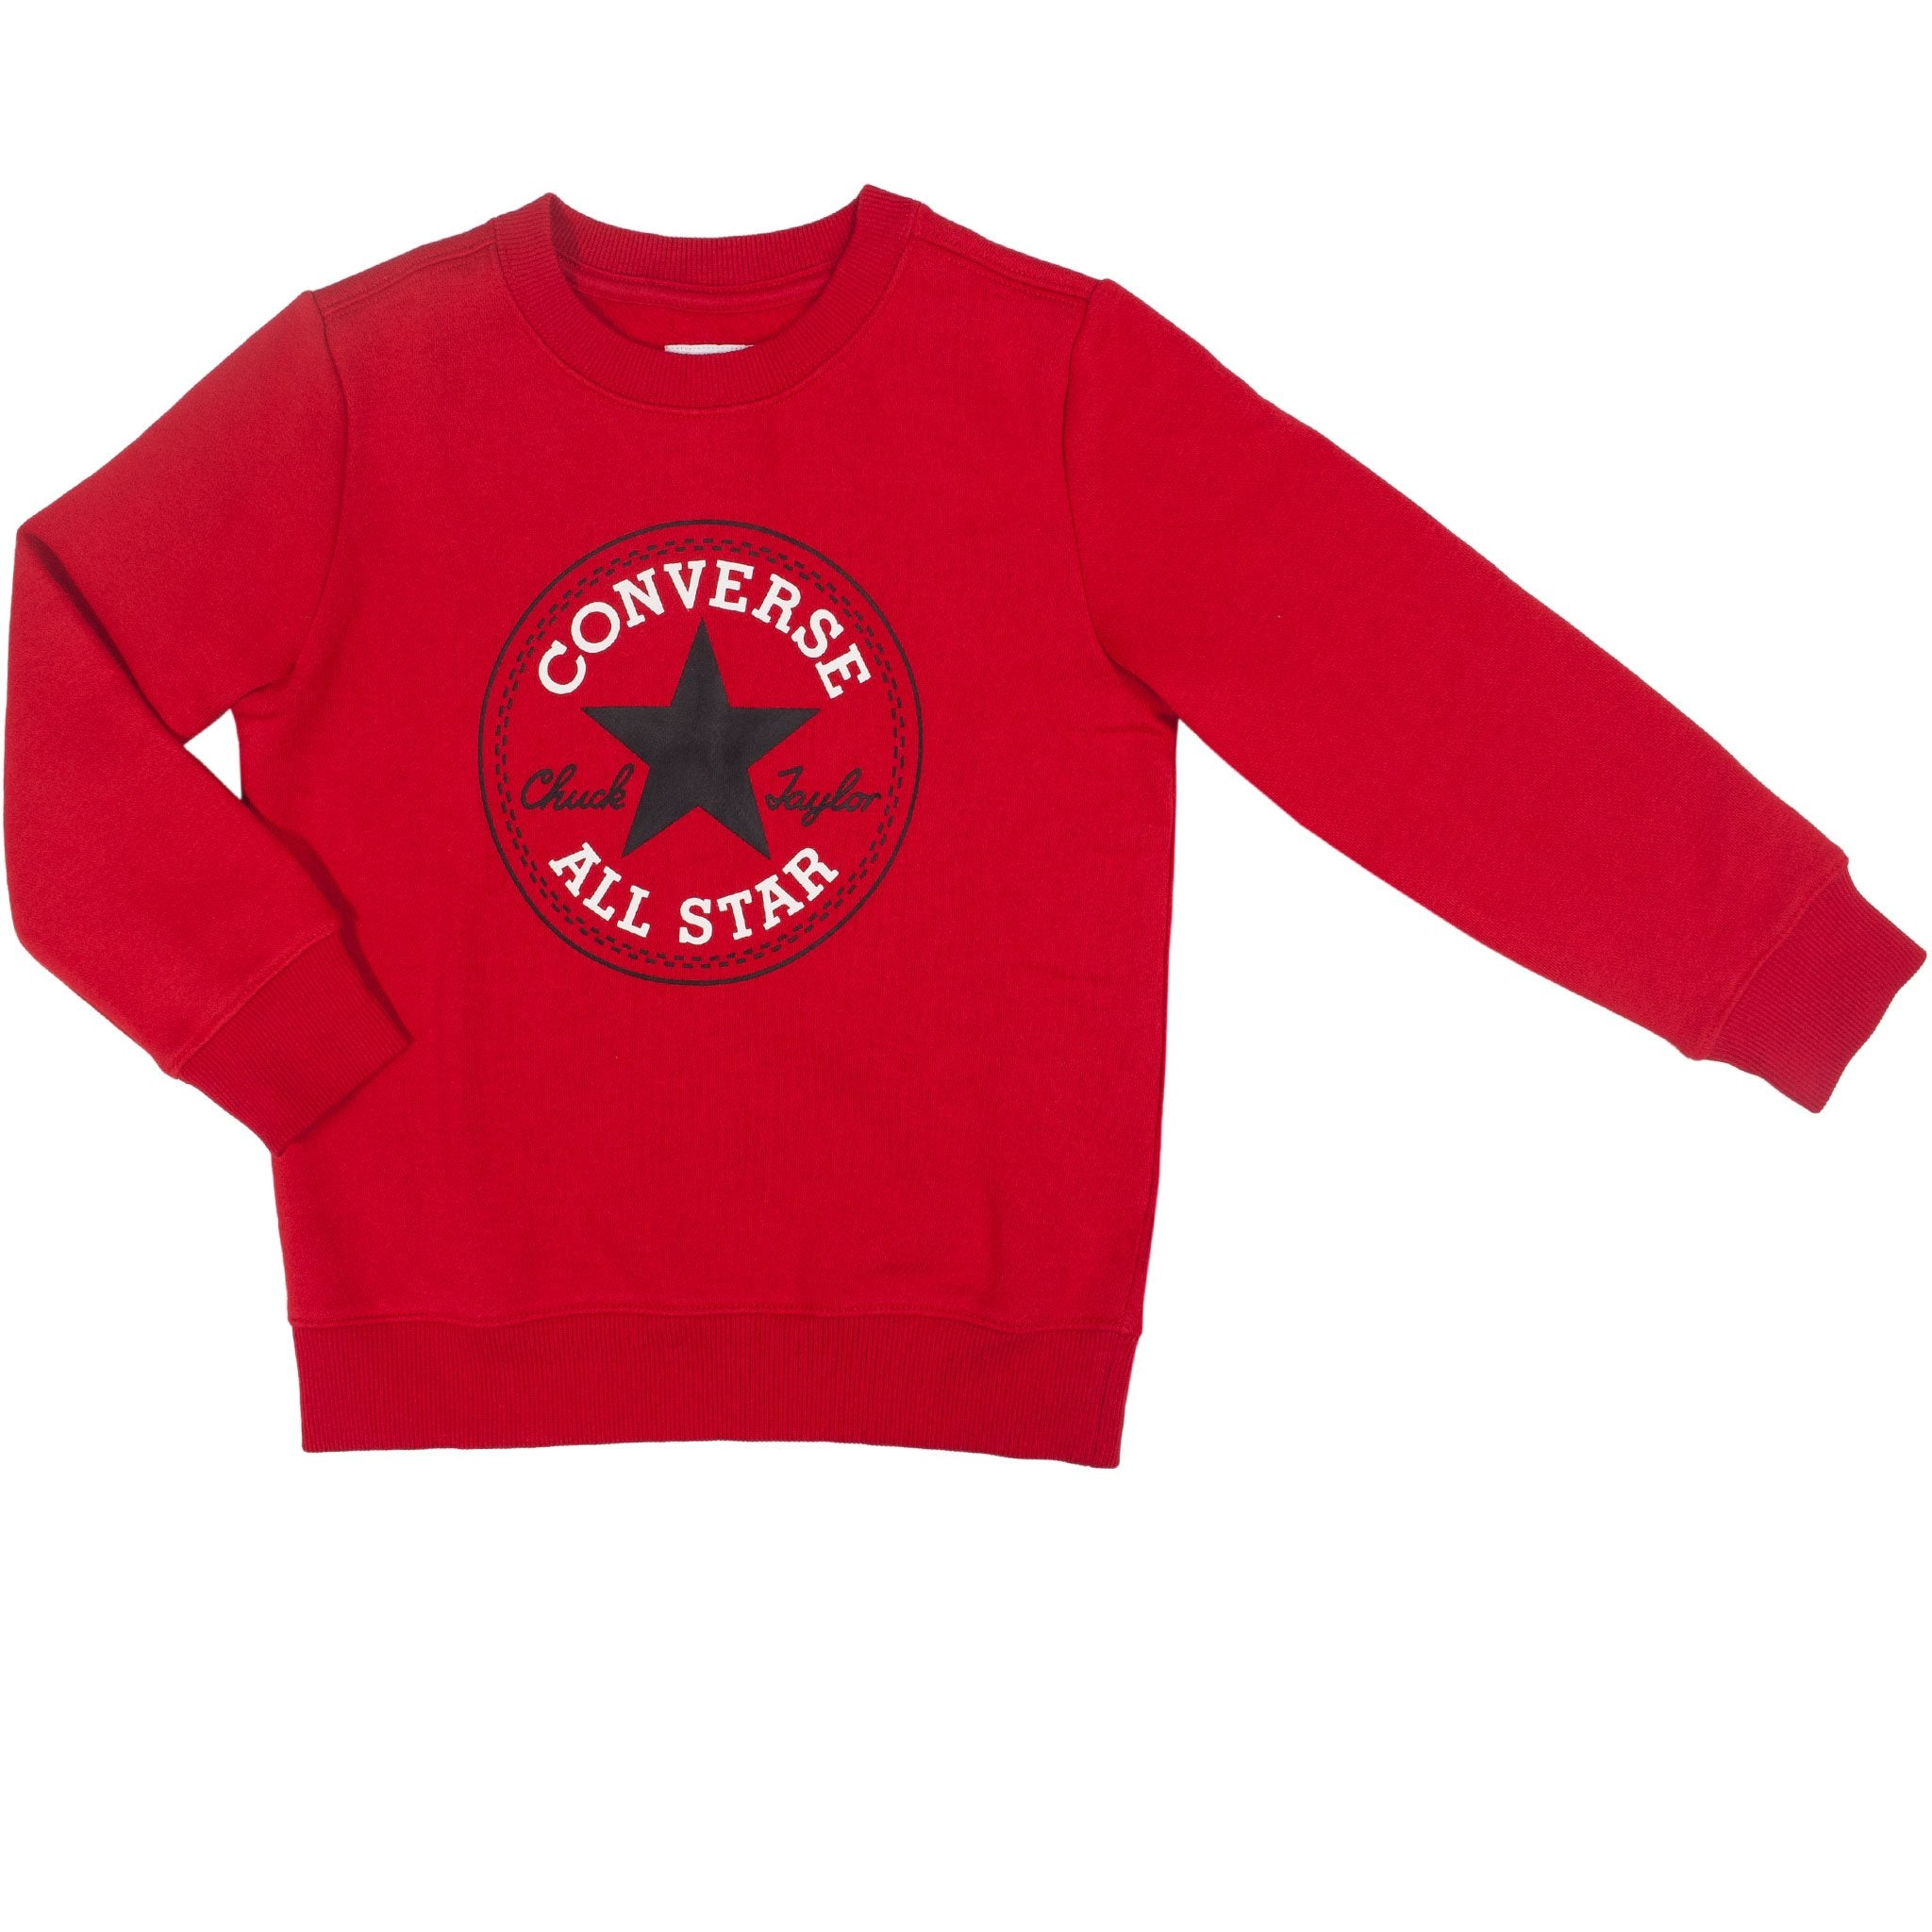 CONVERSE Classic Round Neck Pullover - rookiehk